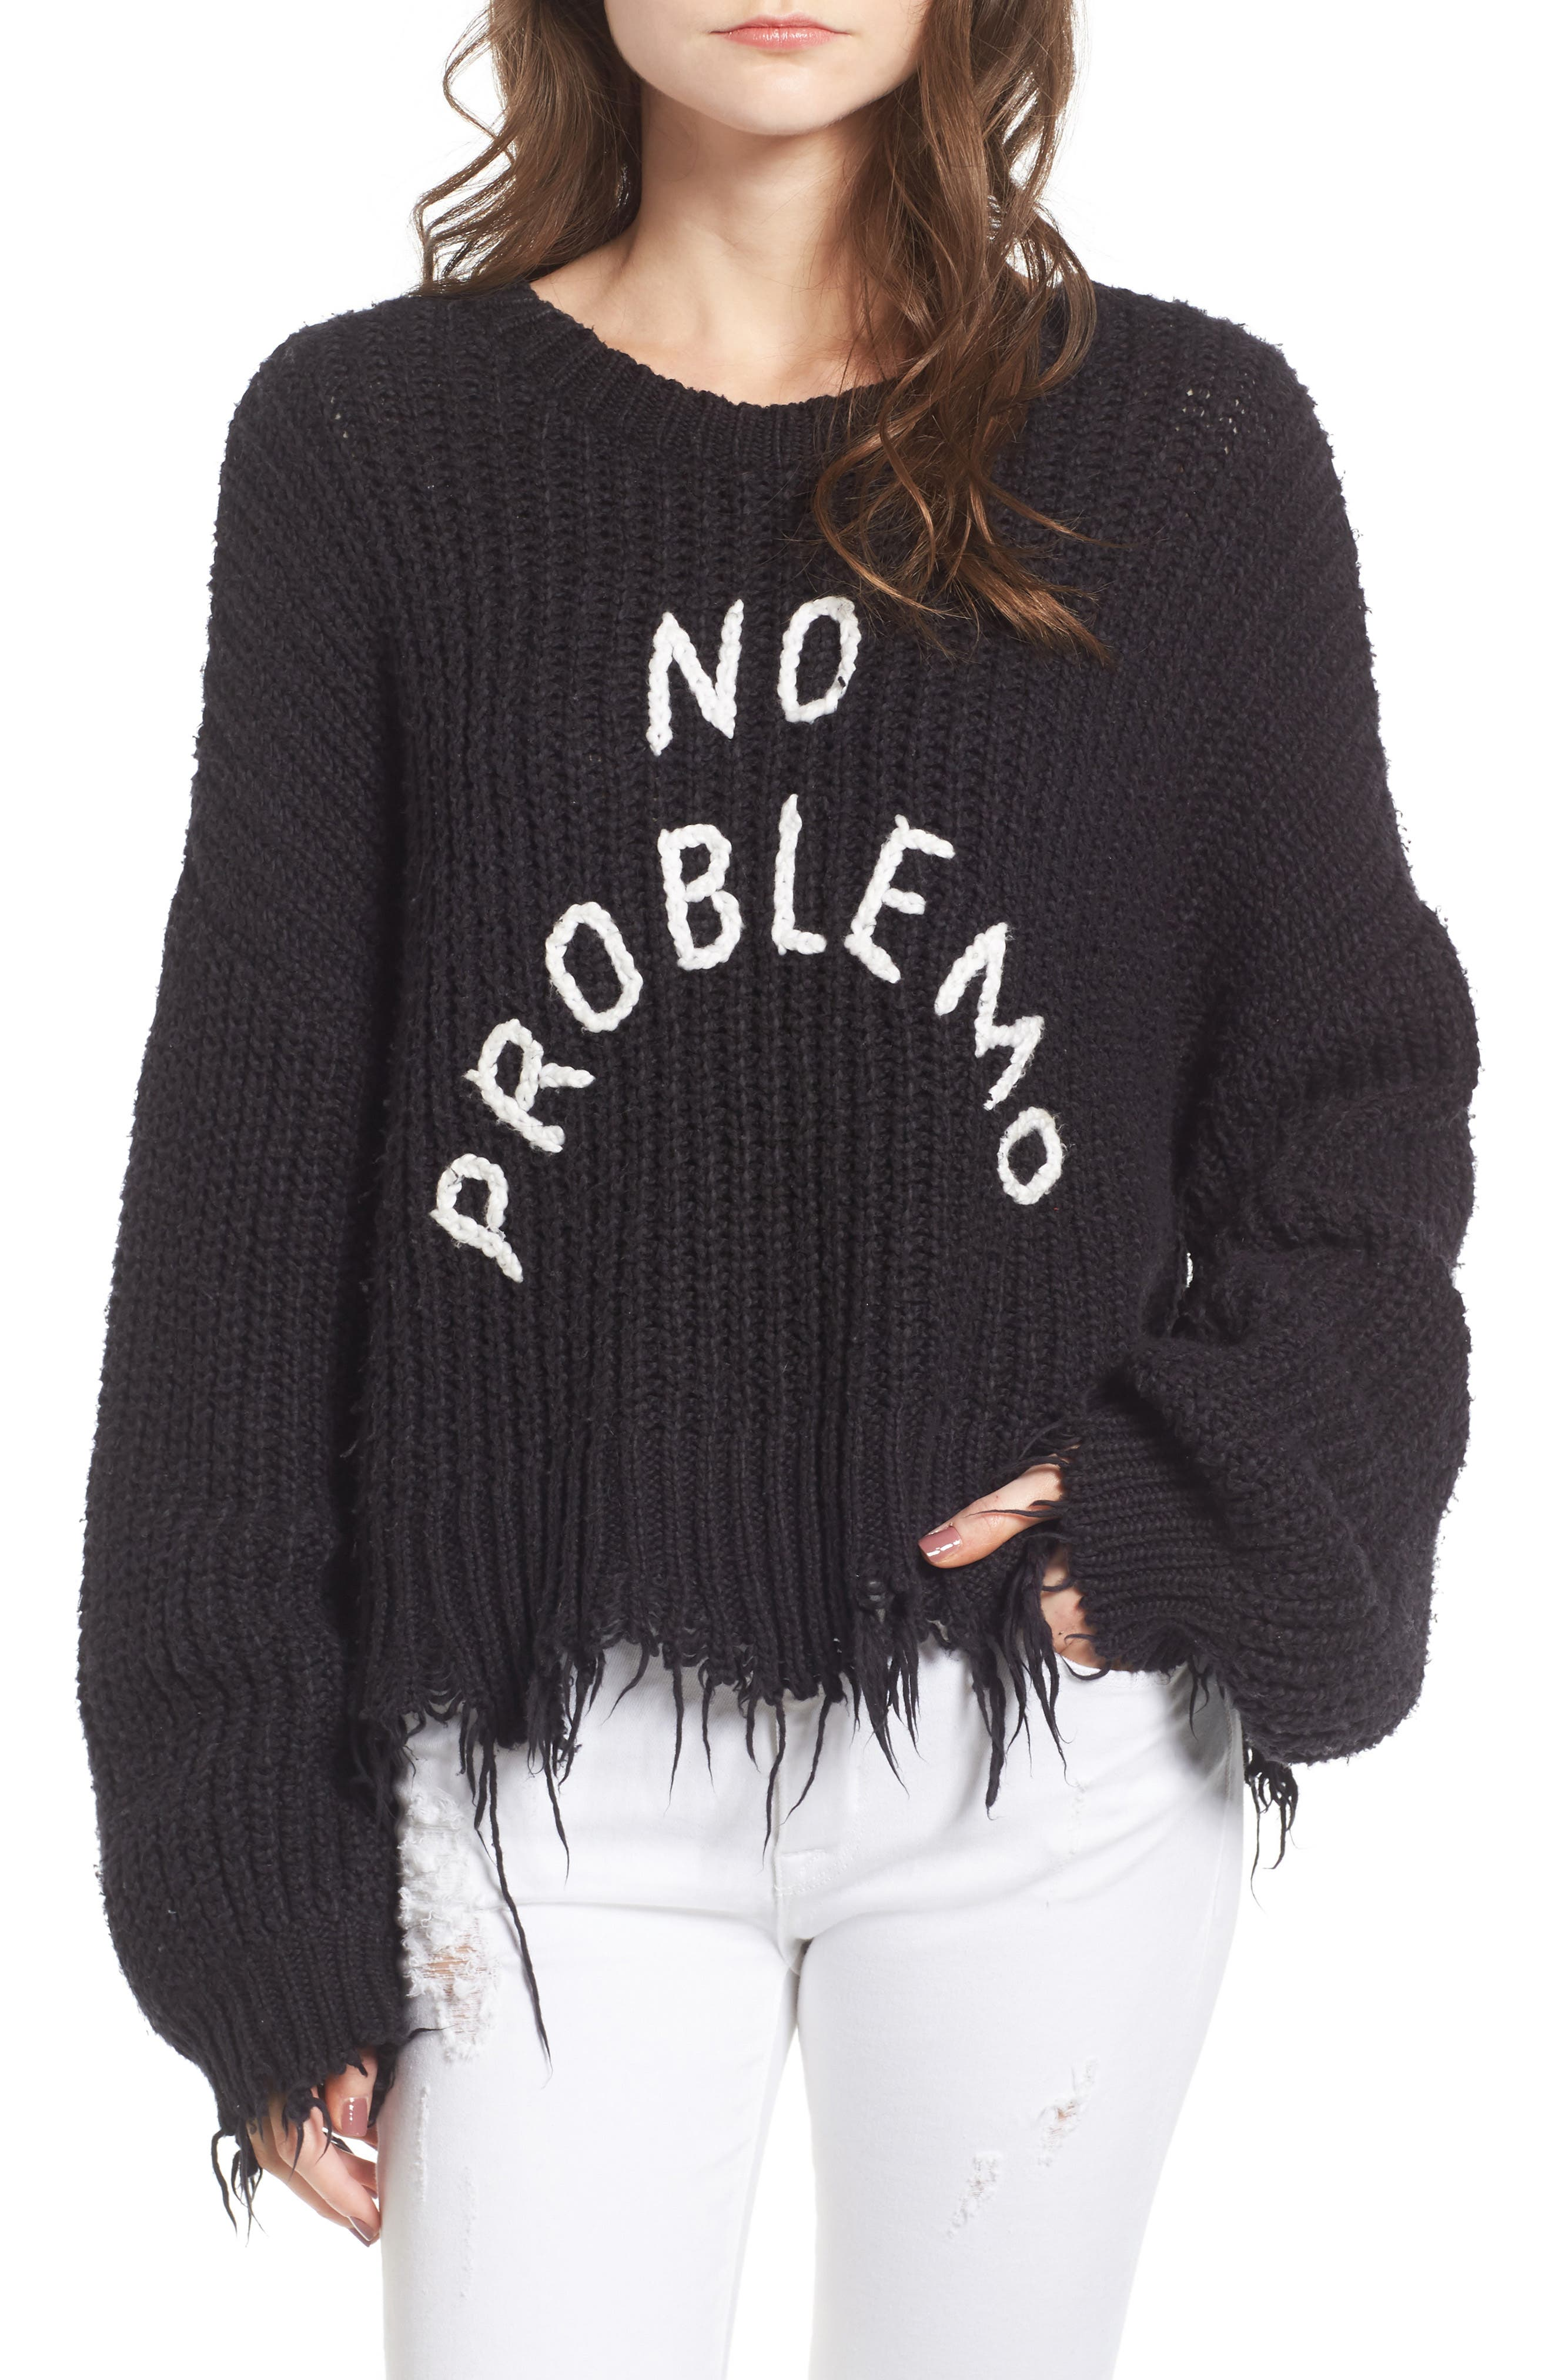 Alternate Image 1 Selected - Wildfox No Problemo Sweater